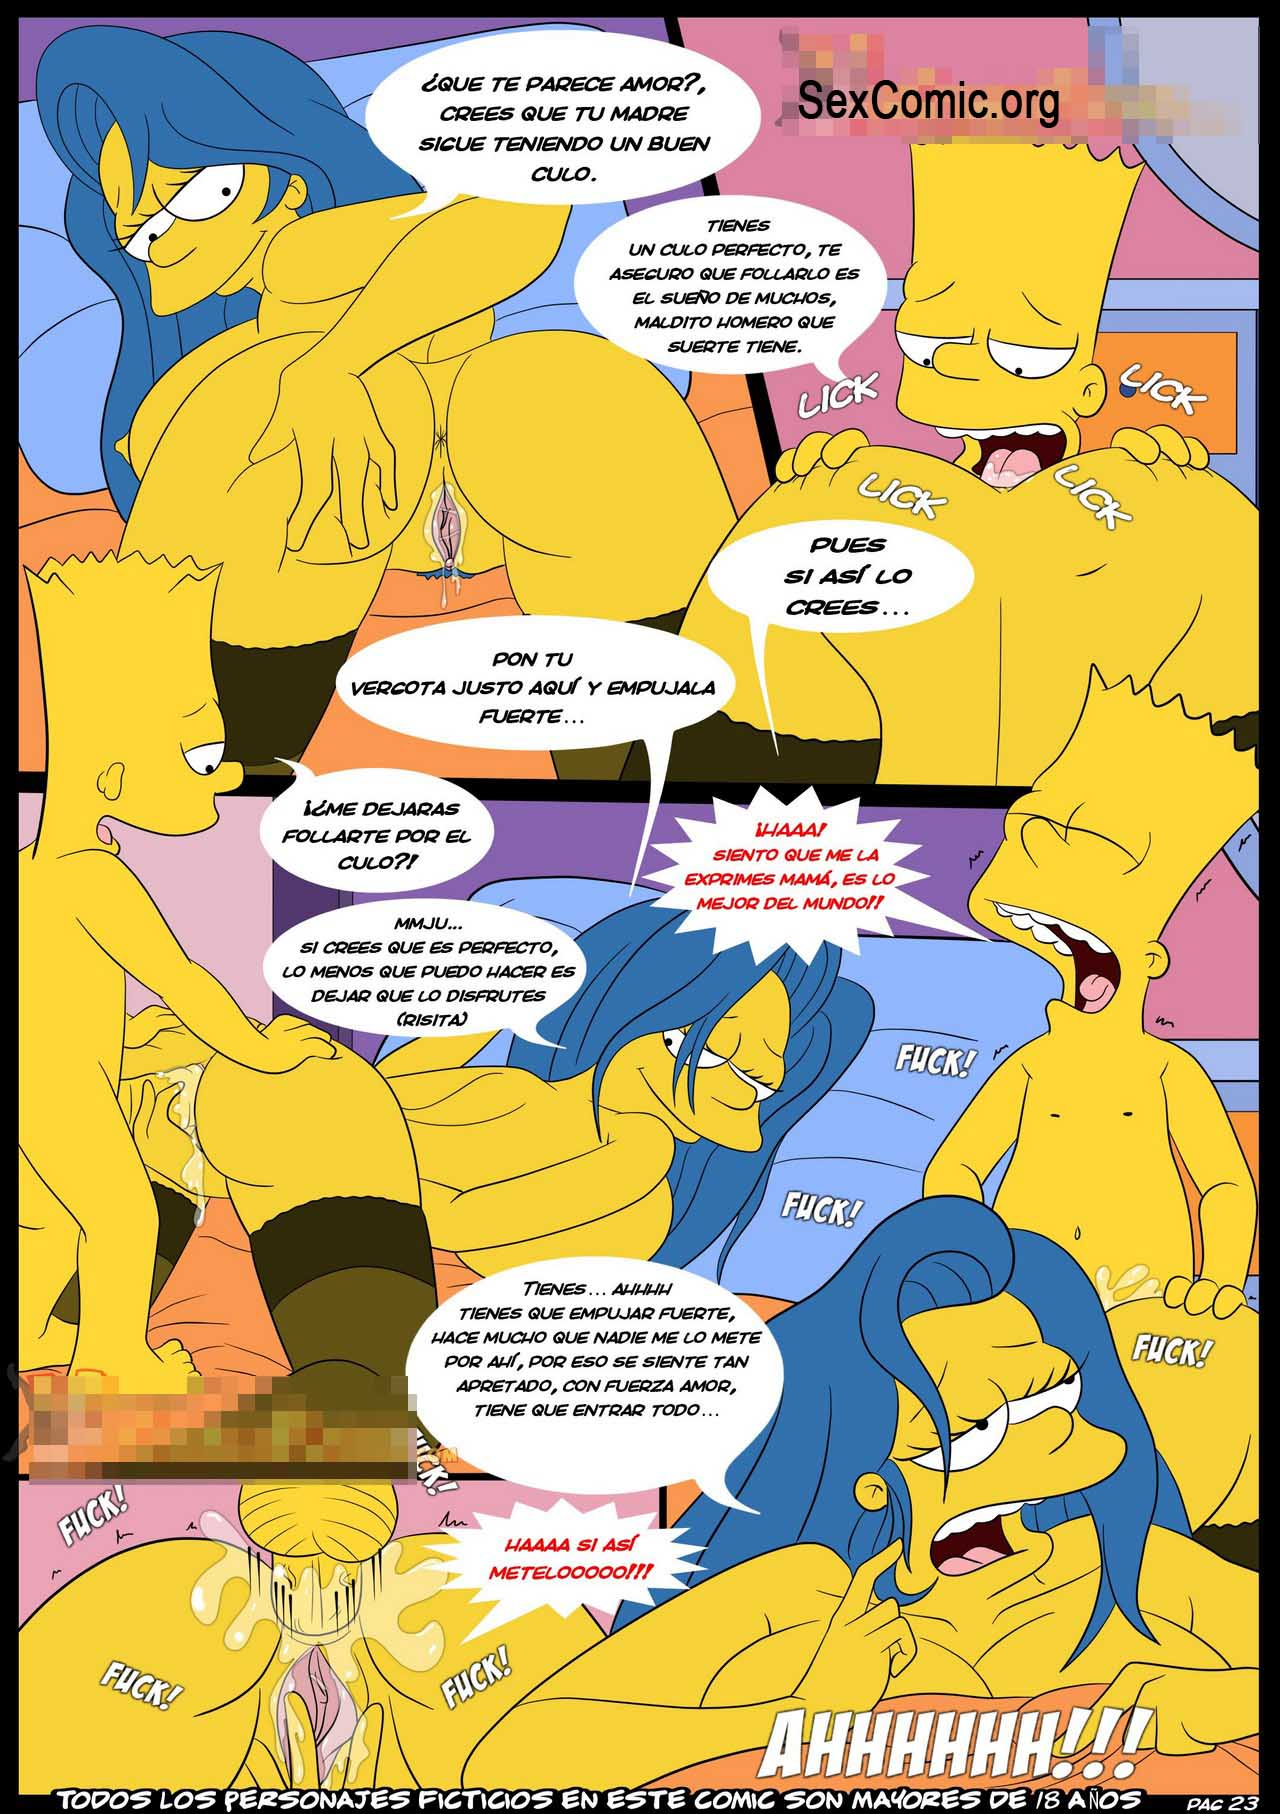 Los Simpsons xxx -incesto-bart-march-follando-cogiendo-sexo-desnuda-video-historieta-comic-los-simpsons-porno-follando-con-mama (24)